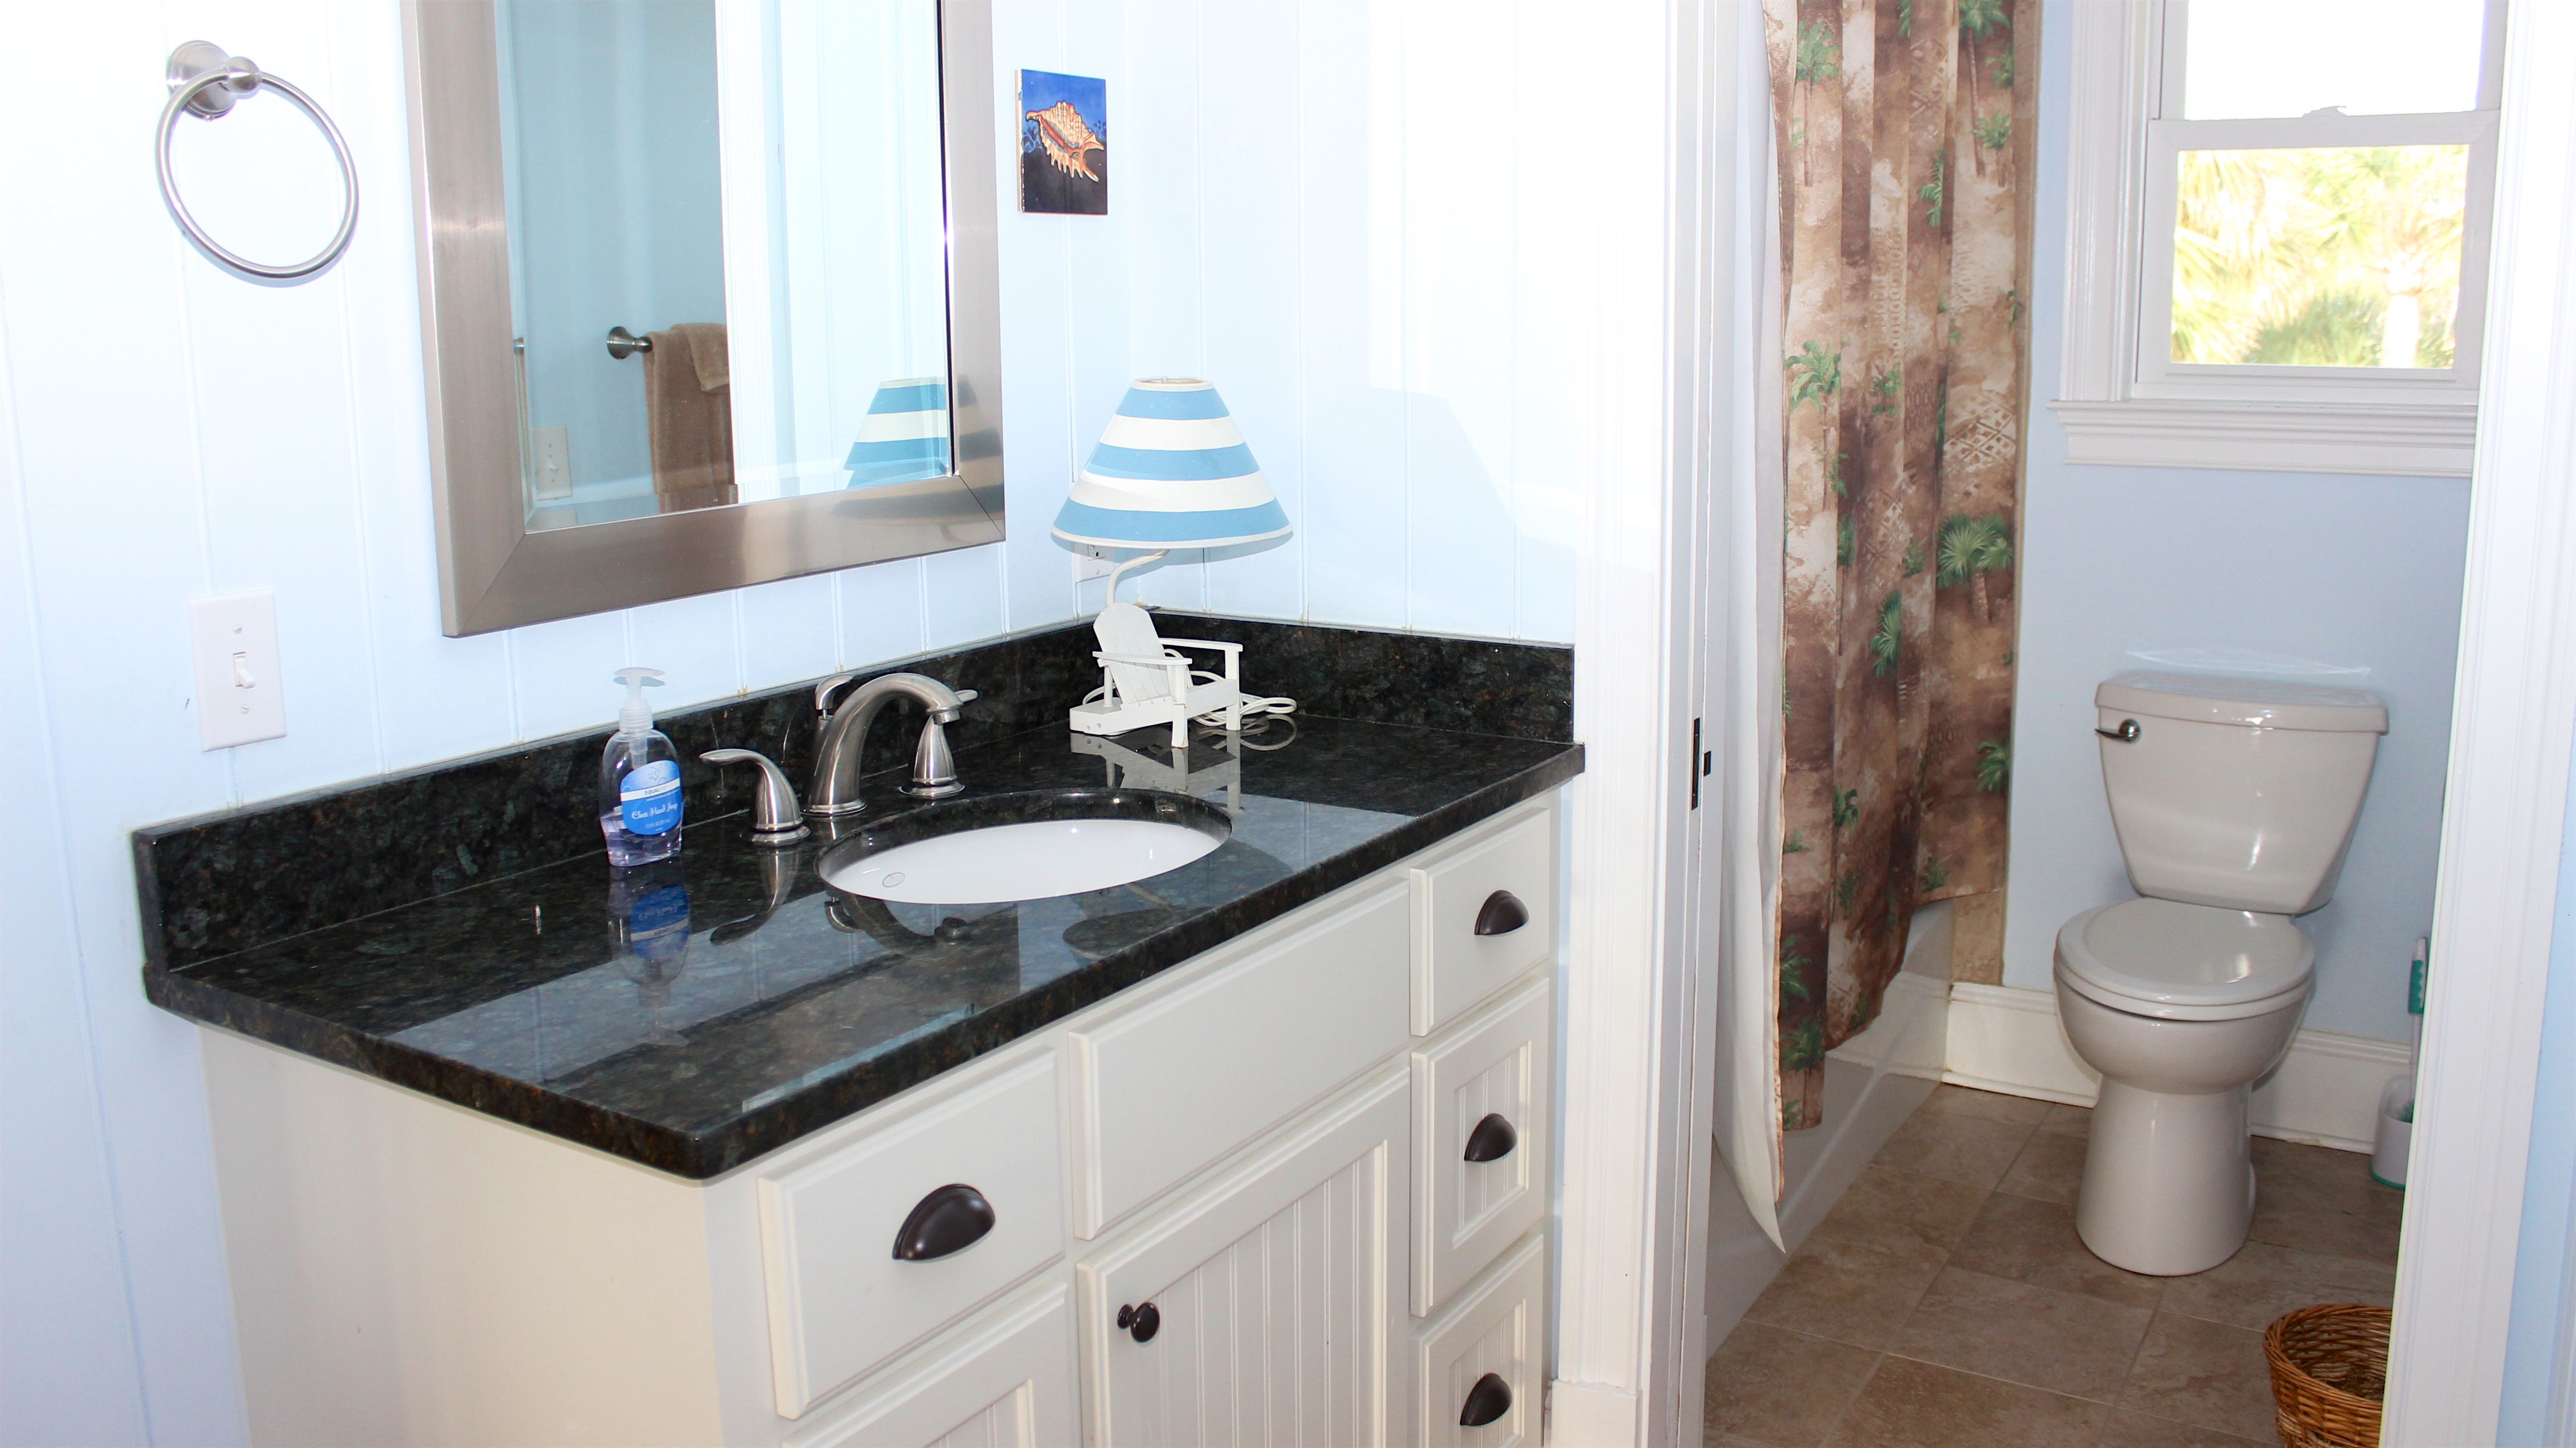 The full bath has a granite vanity & a separate toilet/tub/shower area.